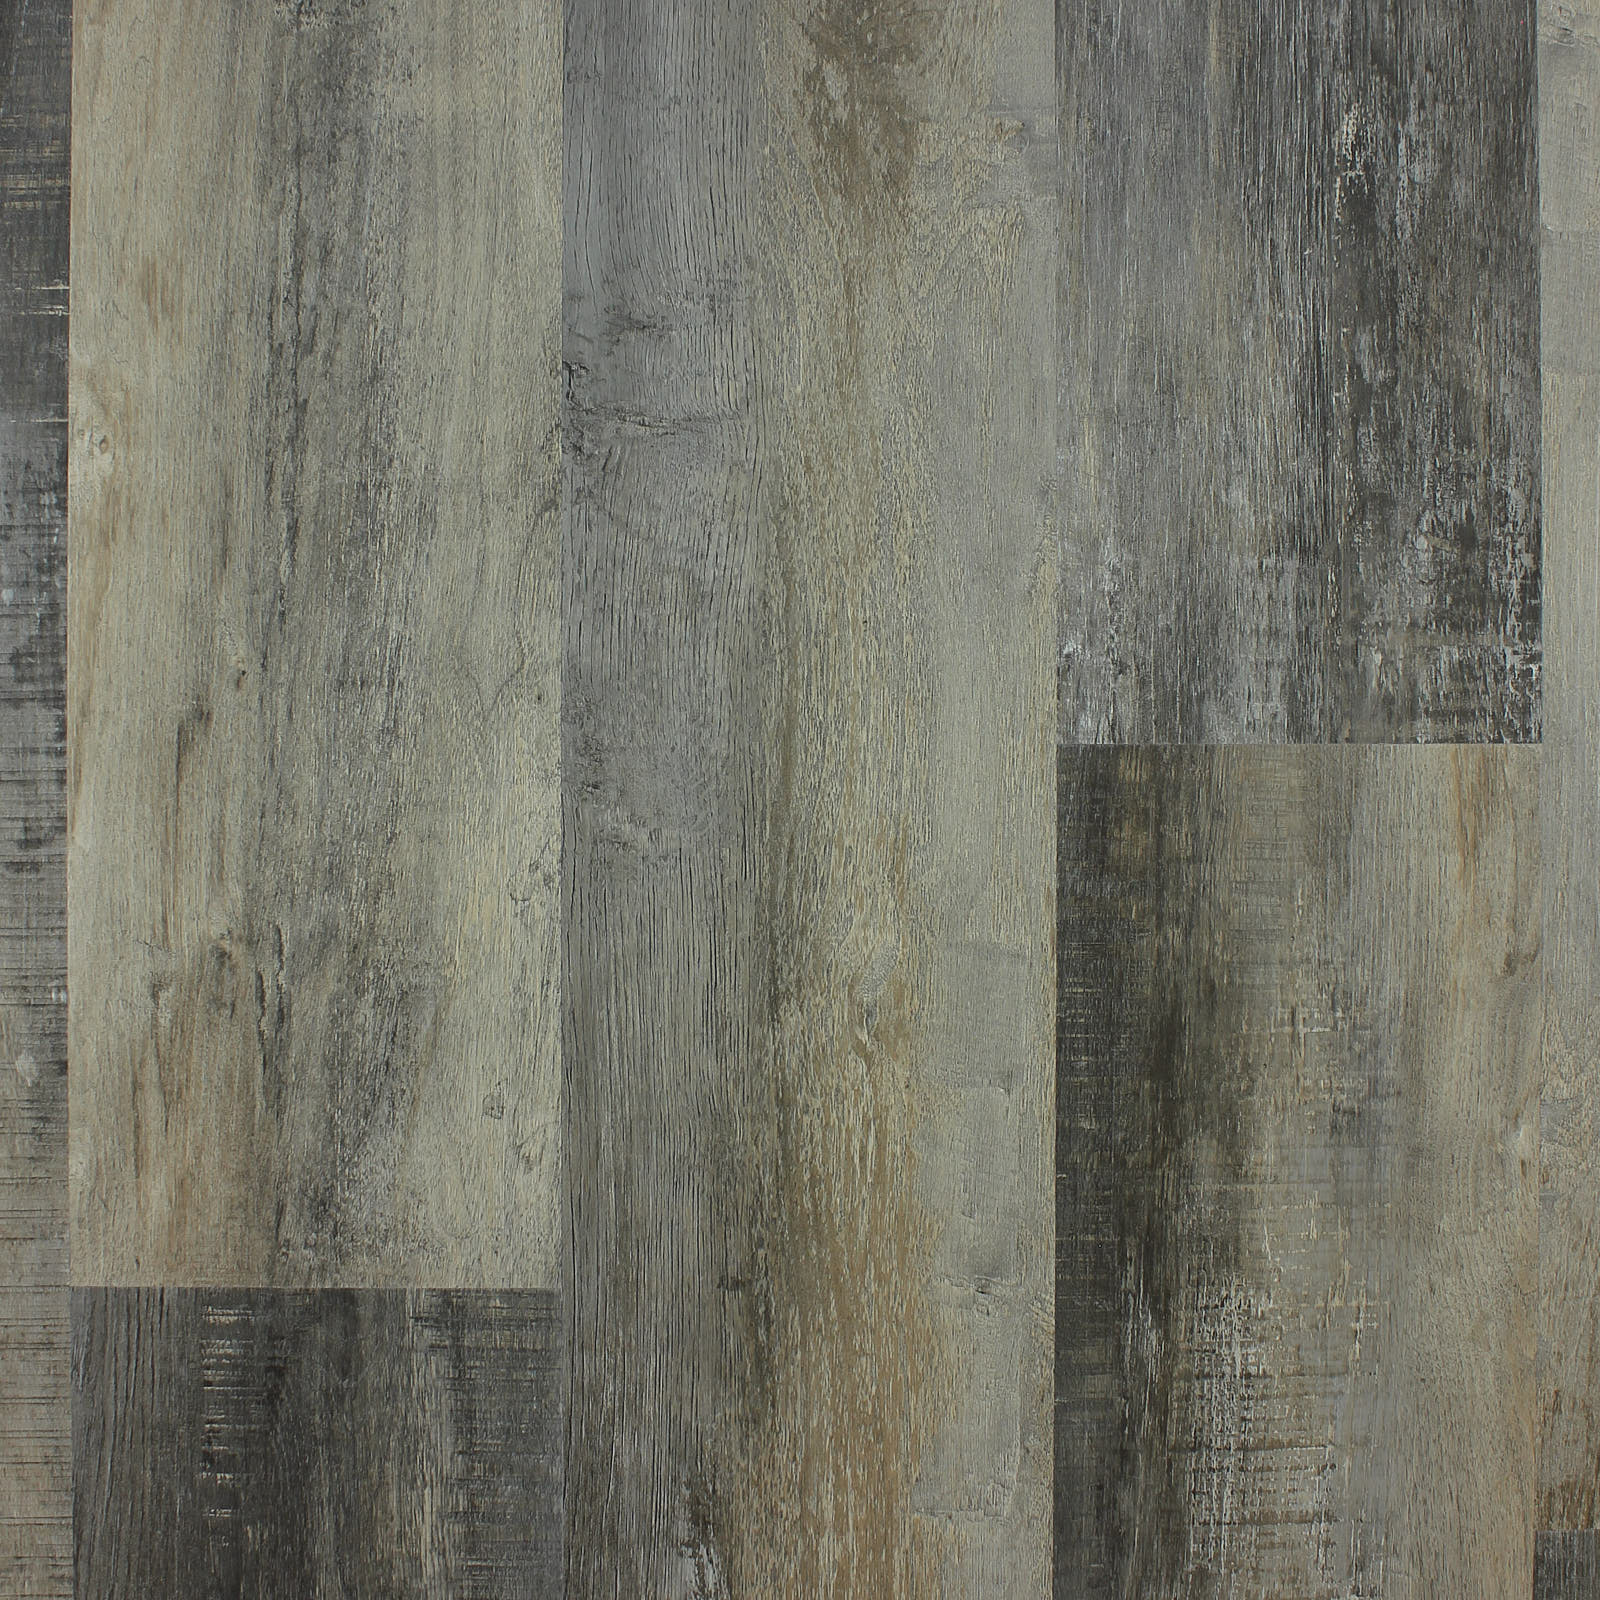 Grasslands Winchester Grey Rigid Core Vinyl Plank Flooring